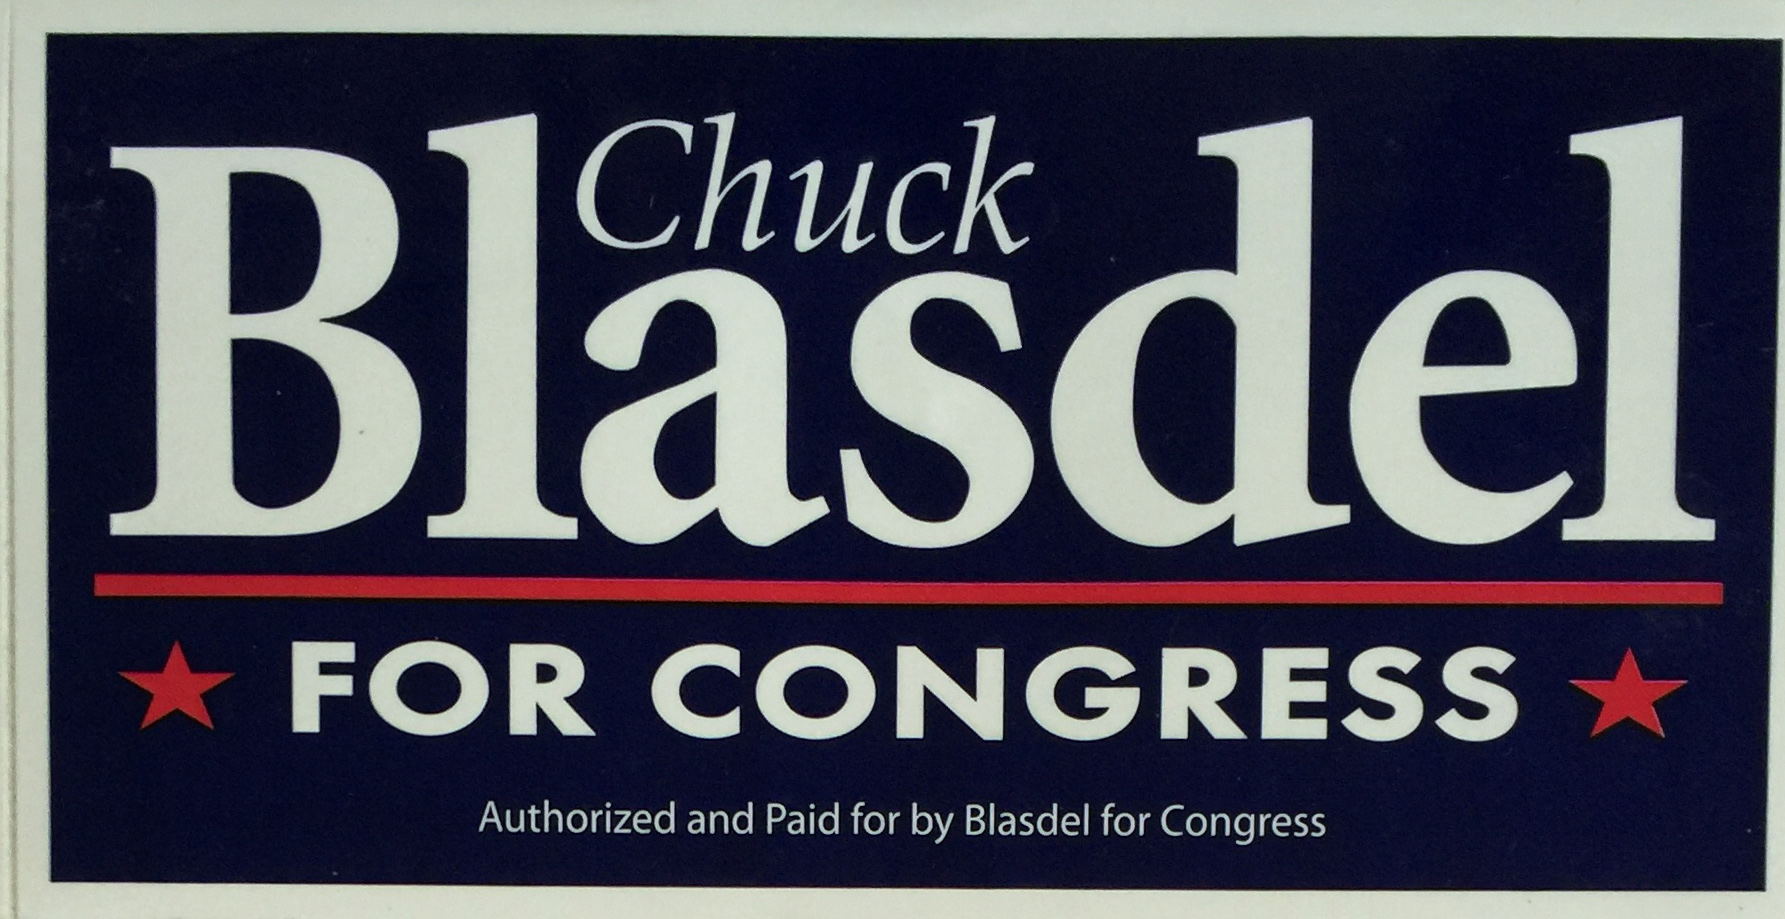 Sticker-congress BLASDEL.jpg